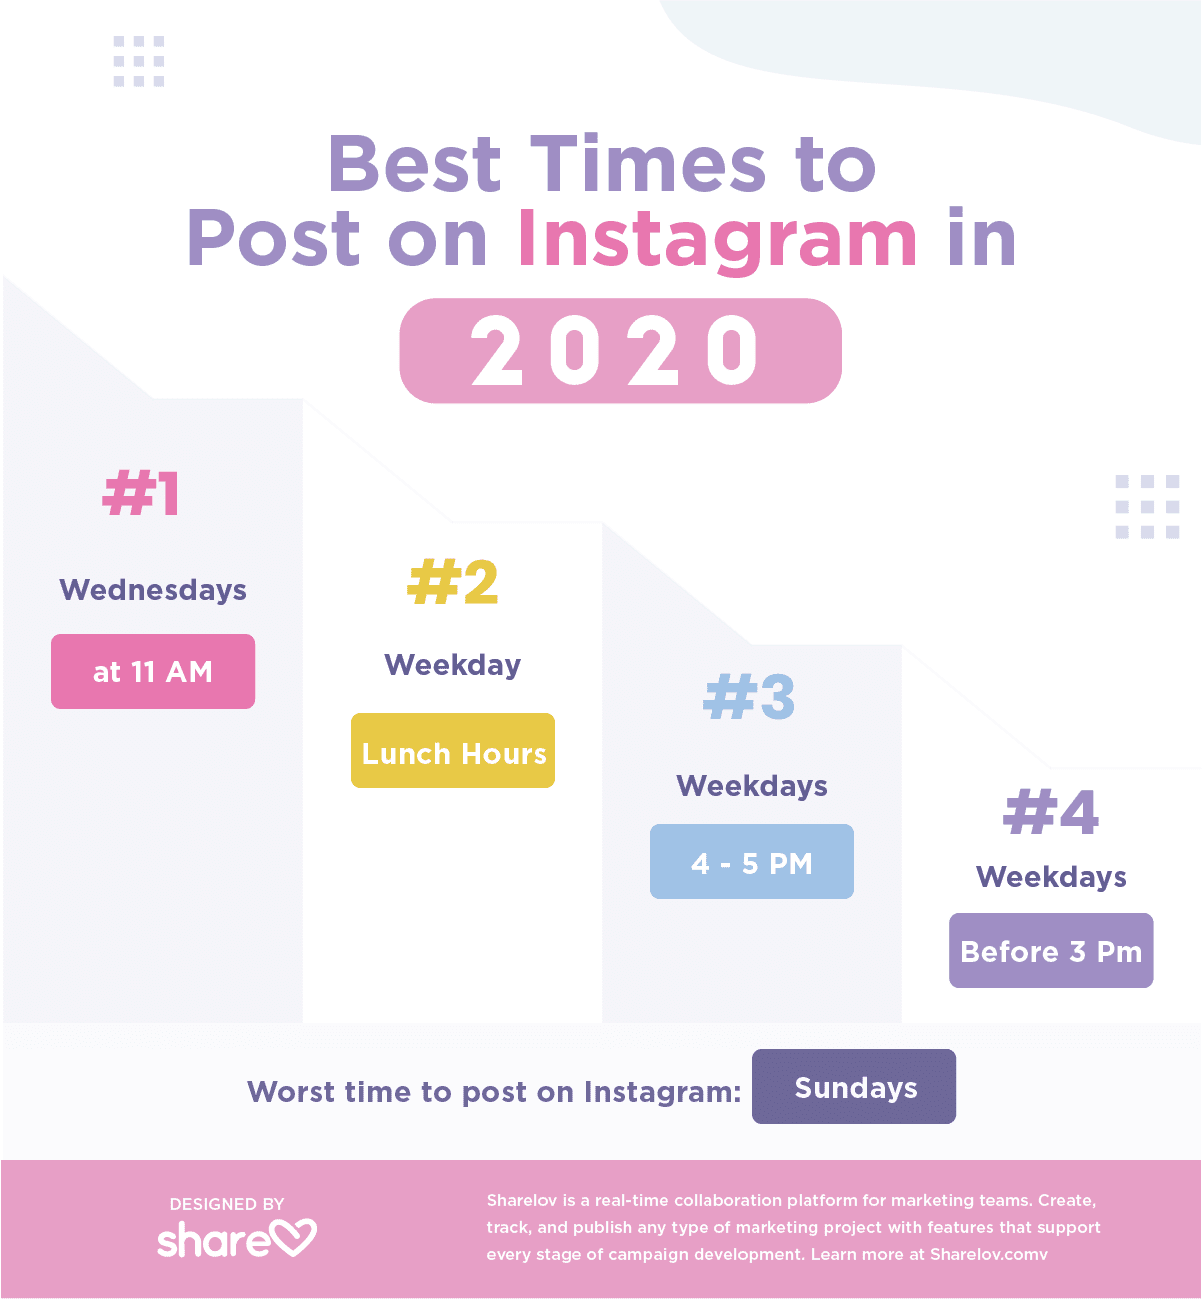 Best Times to Post on Instagram in 2020 infographic